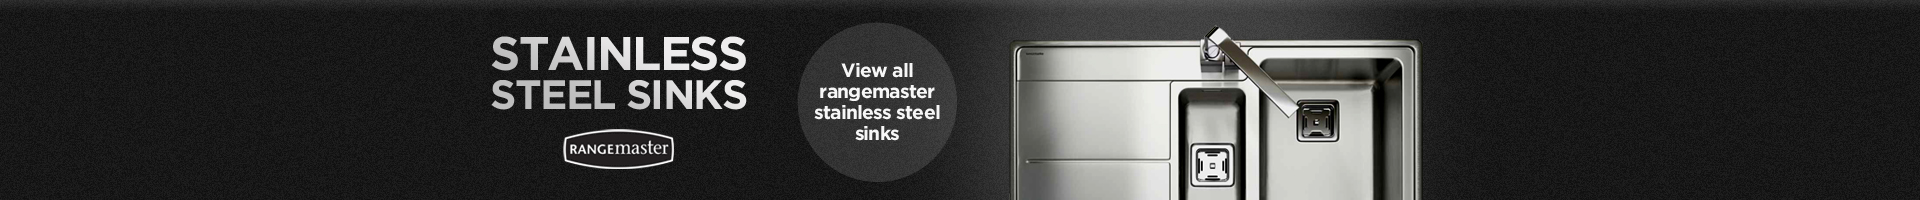 Stainless Steel Offers